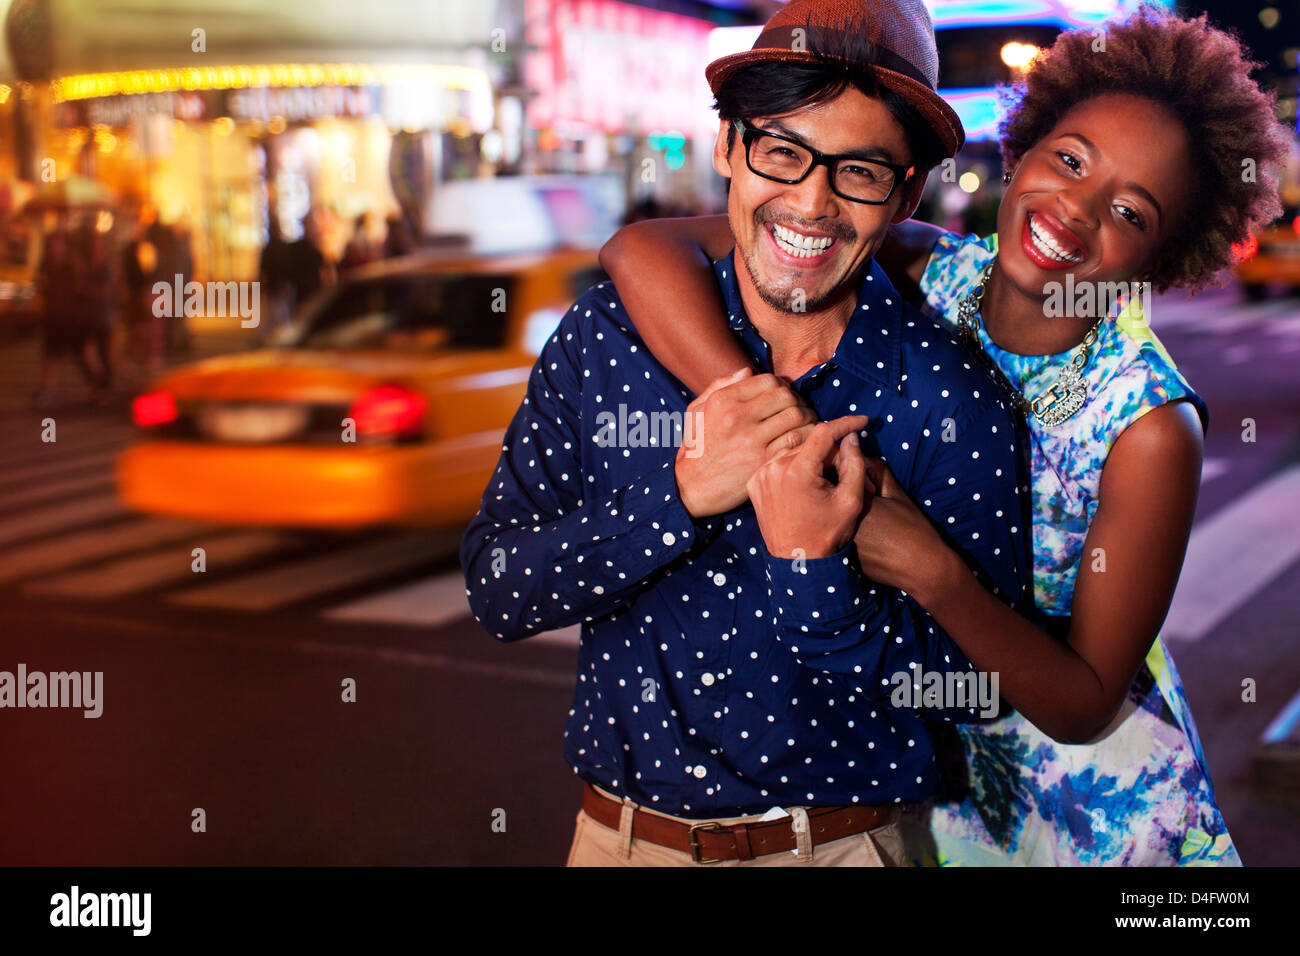 Couple smiling on city street at night - Stock Image